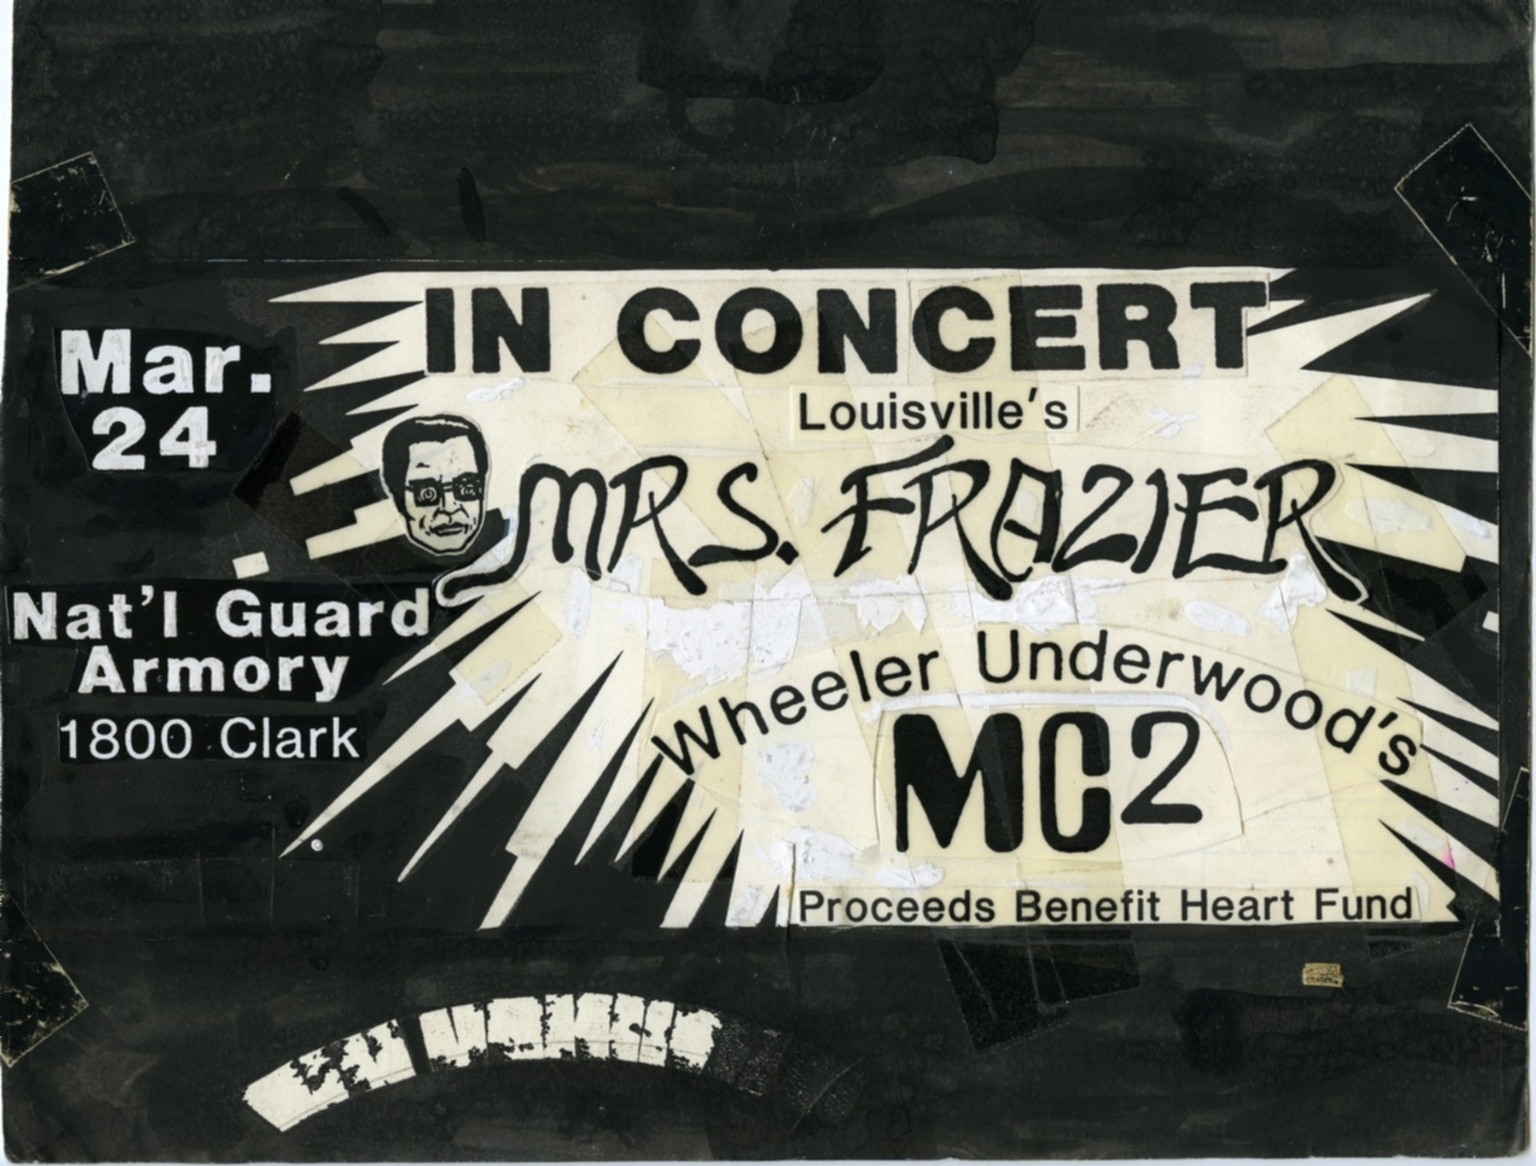 March 24th National Guard Armory Show